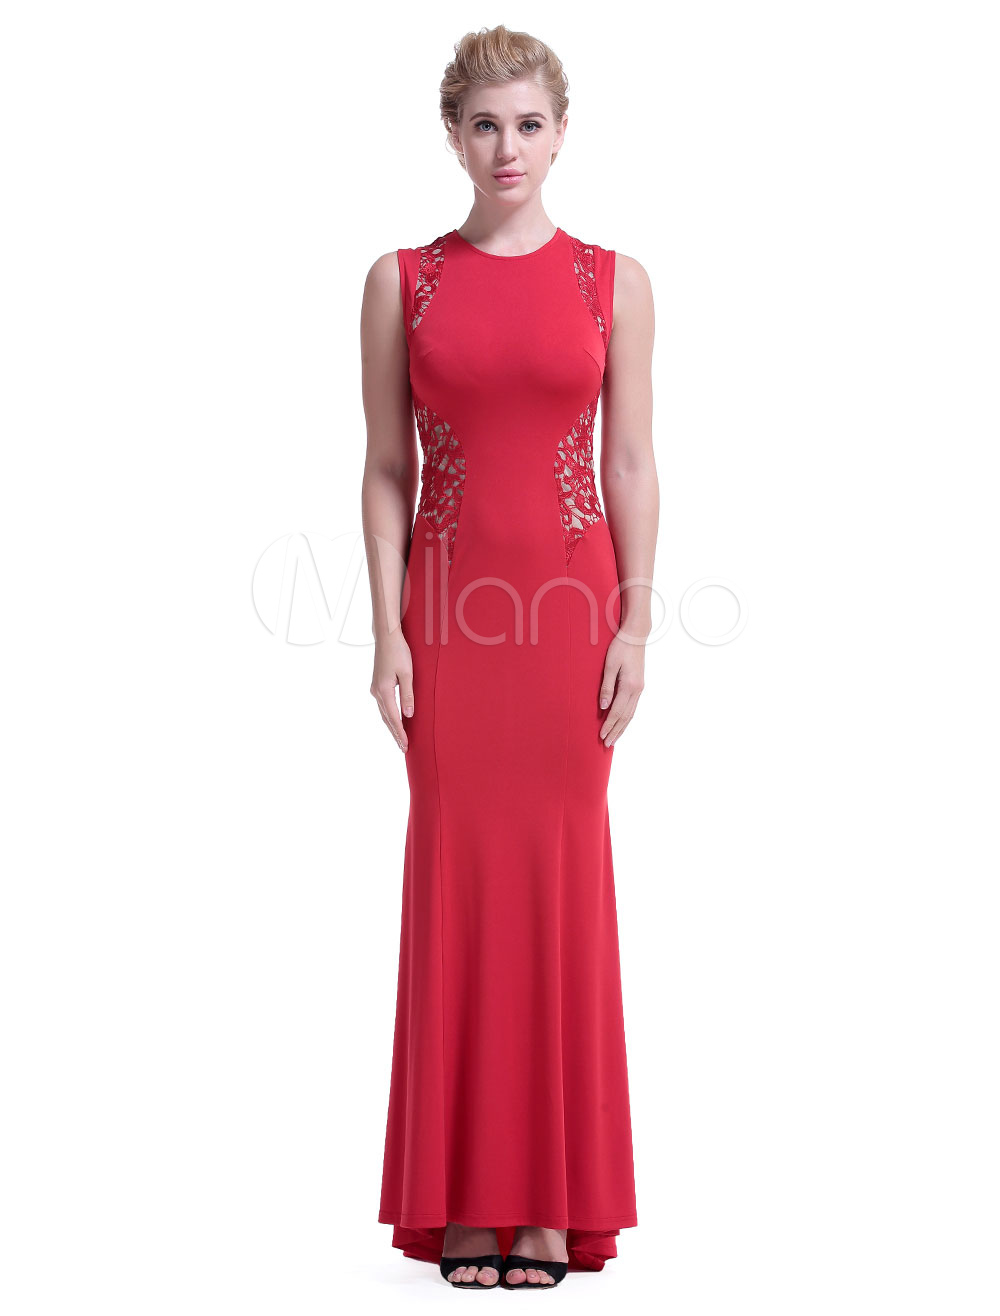 Red Maxi Dress Round Lace Round Neck Sleeveless Pleated Slim Fit Formal Dress Women Evening Dress